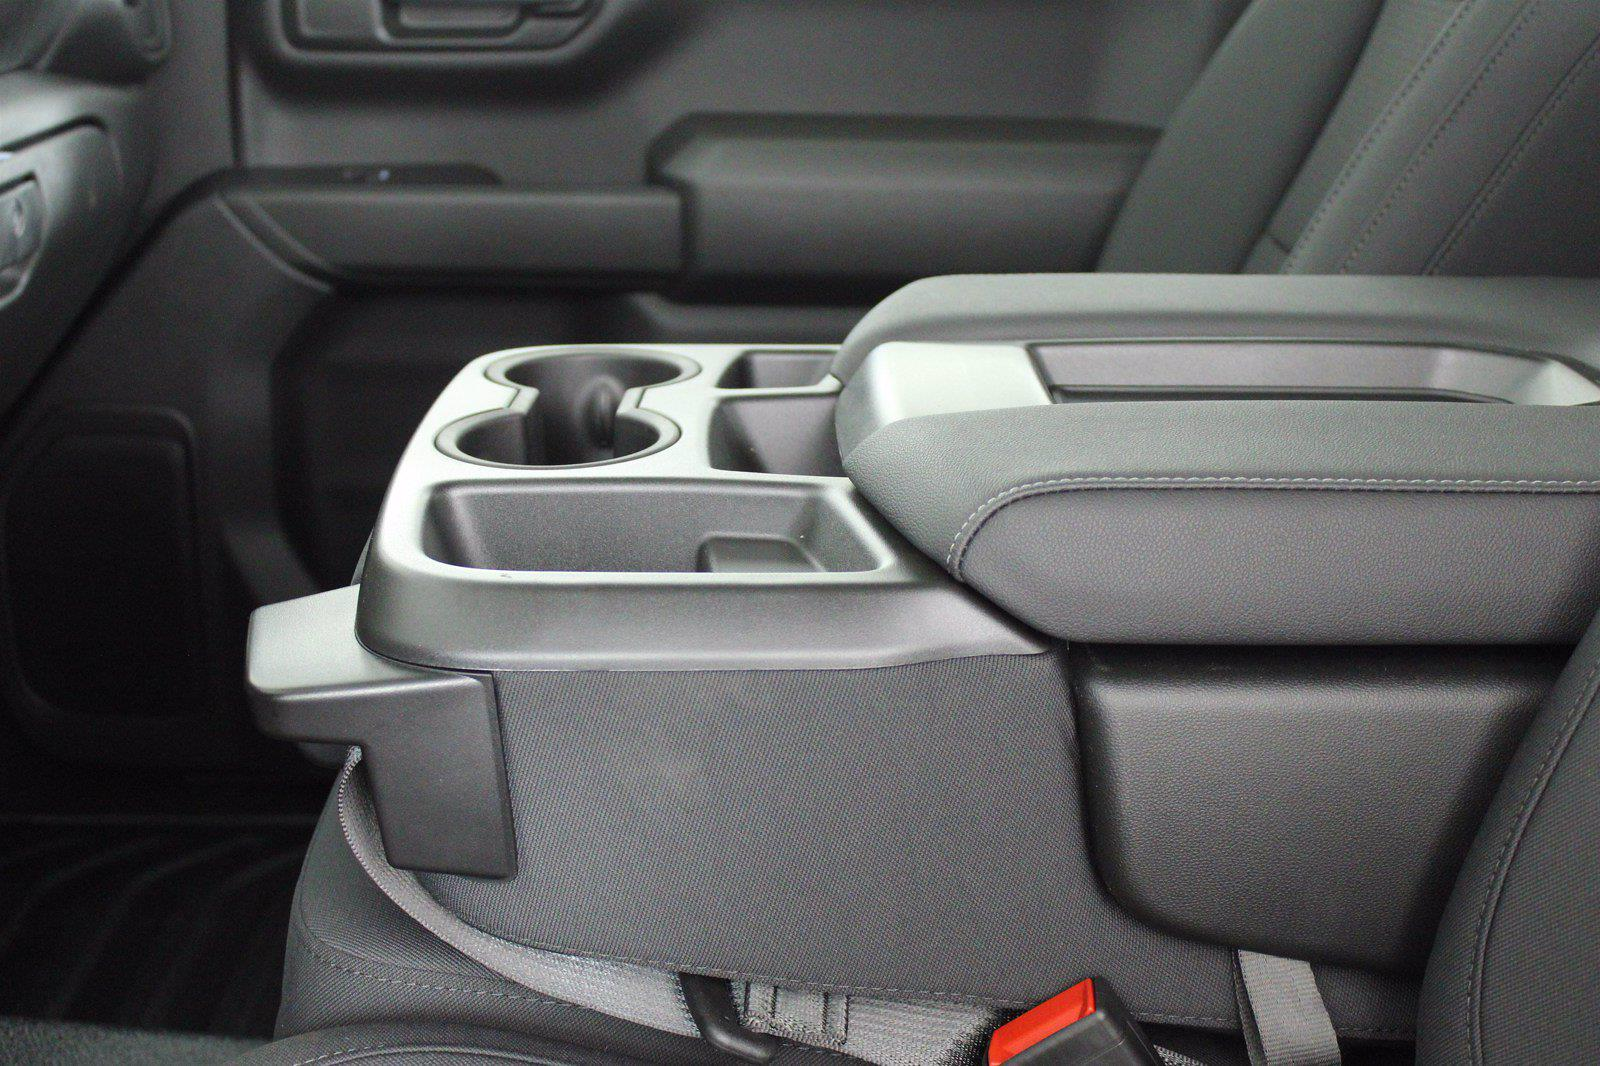 2021 Chevrolet Silverado 1500 Regular Cab 4x2, Pickup #D110765 - photo 13